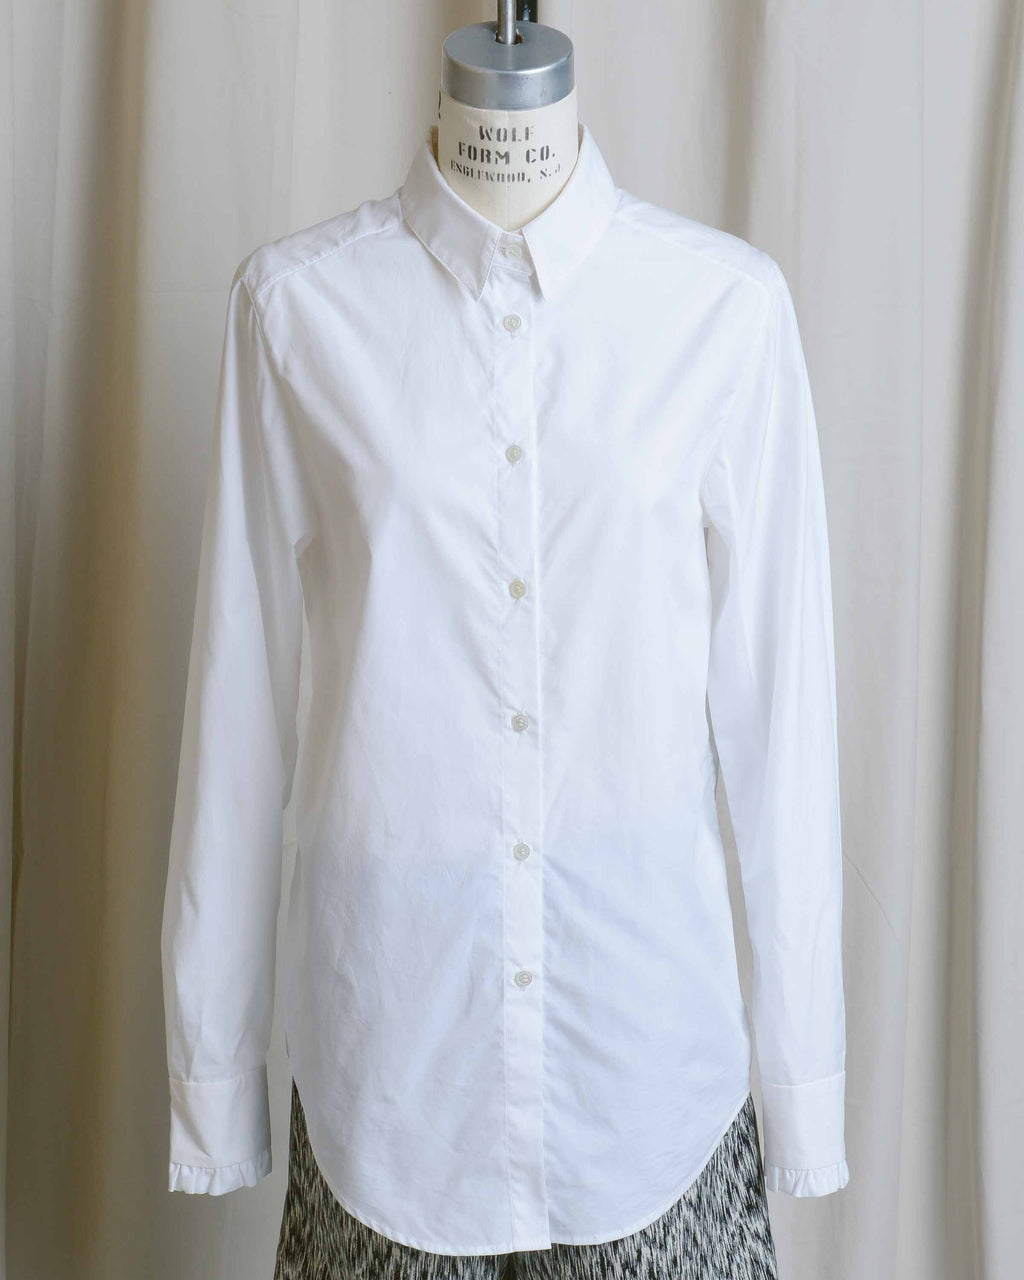 Ruffle Cuff White Button Down Shirt